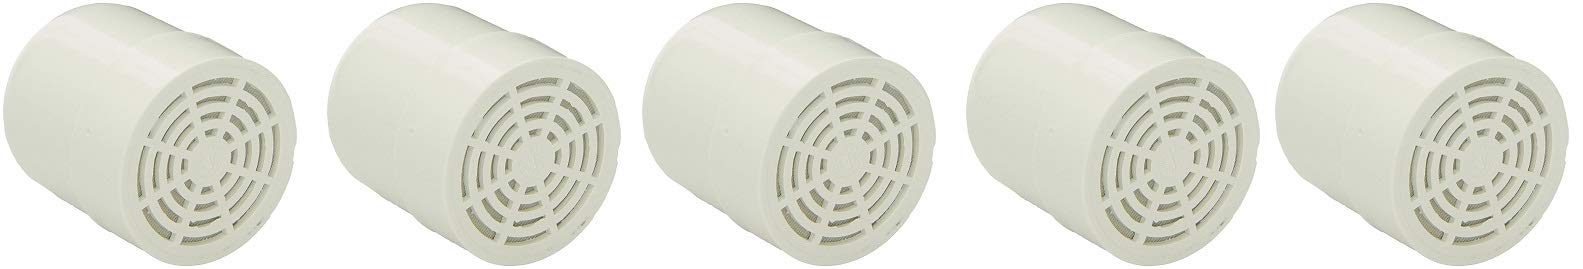 RAINSHOWR-RCCQ-A CQ1000 Filter Replacement Cartridge for Shower Filter (5-(Pack))